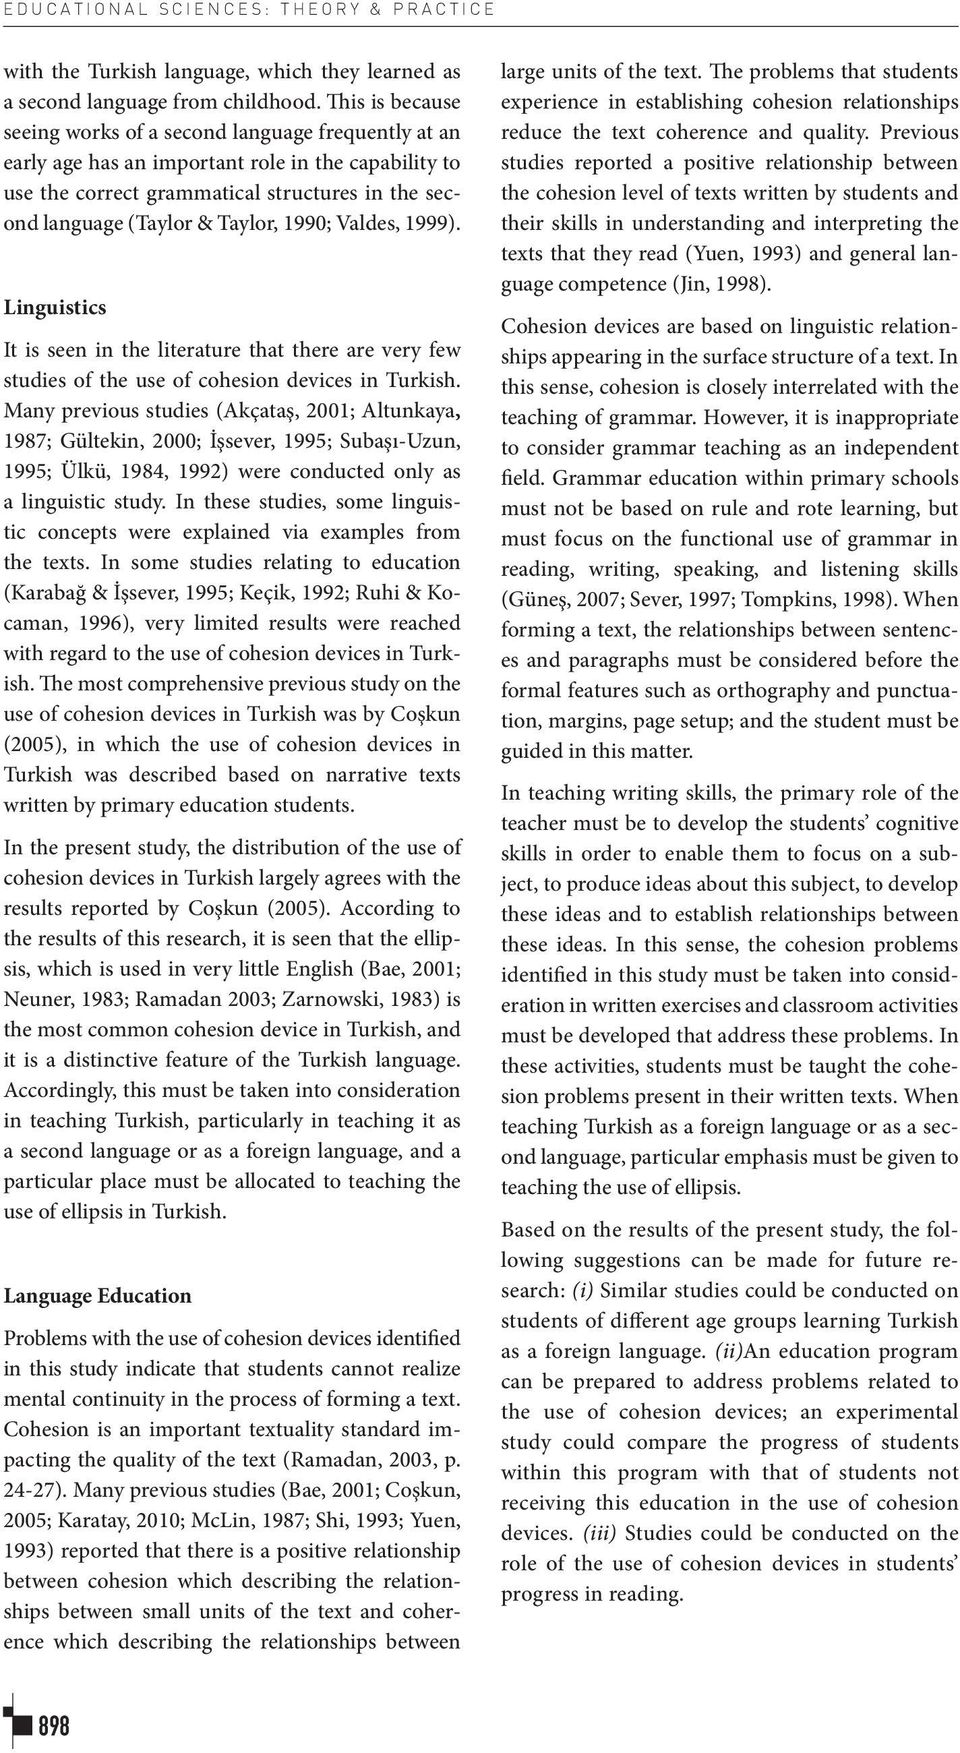 1990; Valdes, 1999). Linguistics It is seen in the literature that there are very few studies of the use of cohesion devices in Turkish.